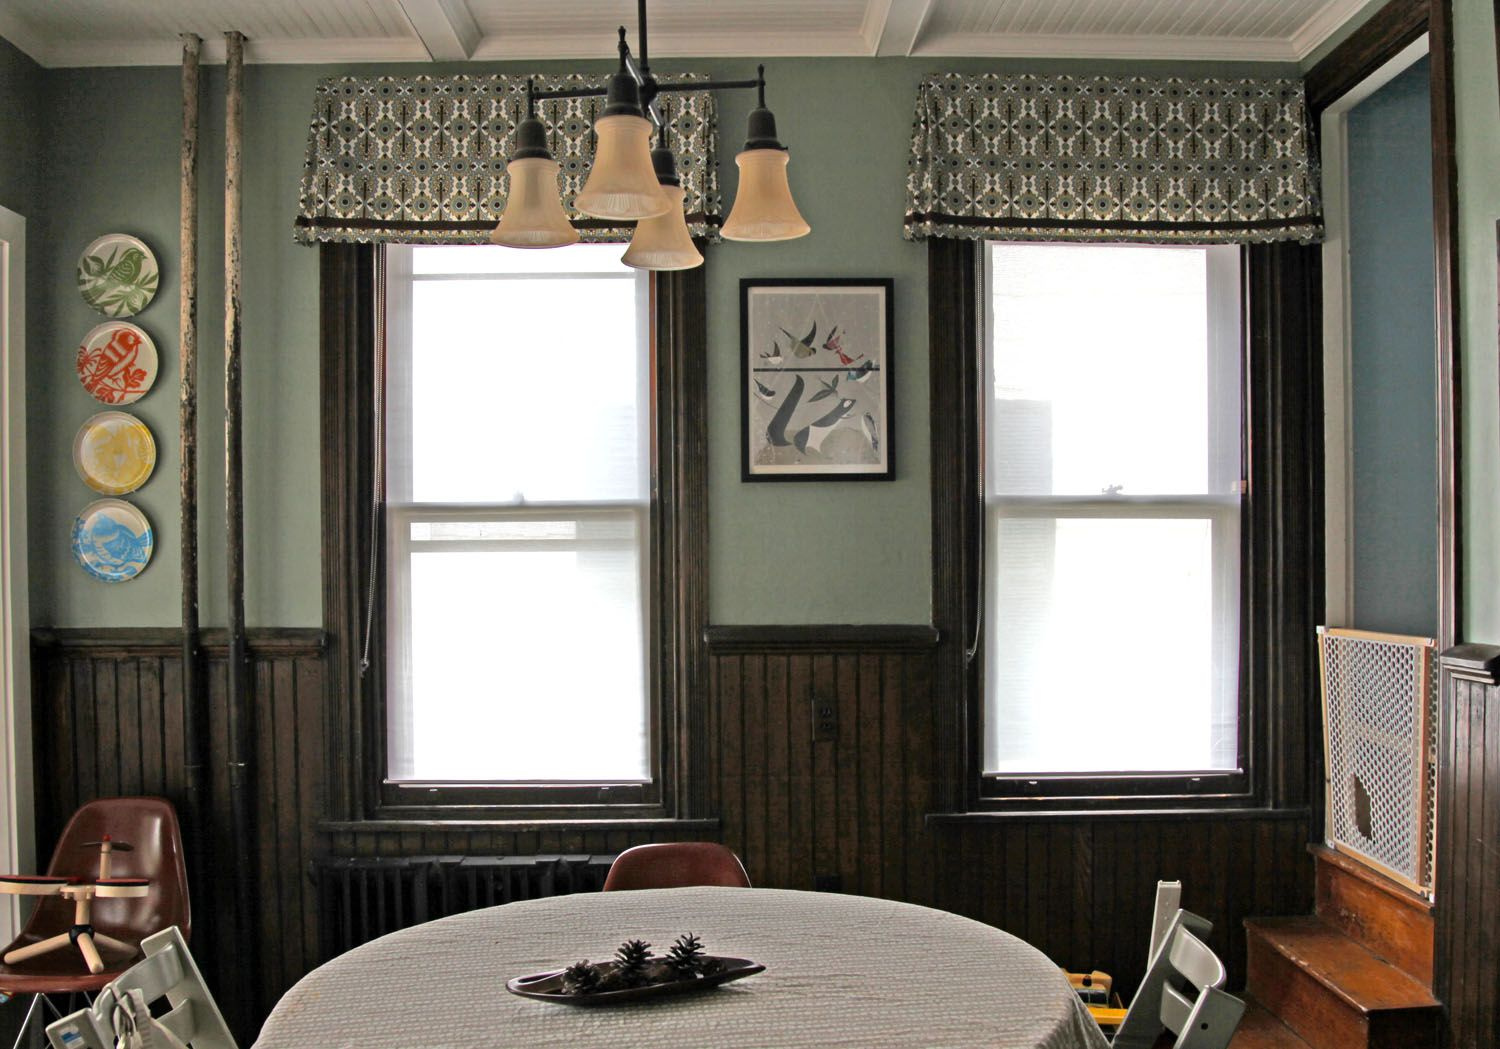 dining room valances | design ideas 2017-2018 | Pinterest | Valance ...